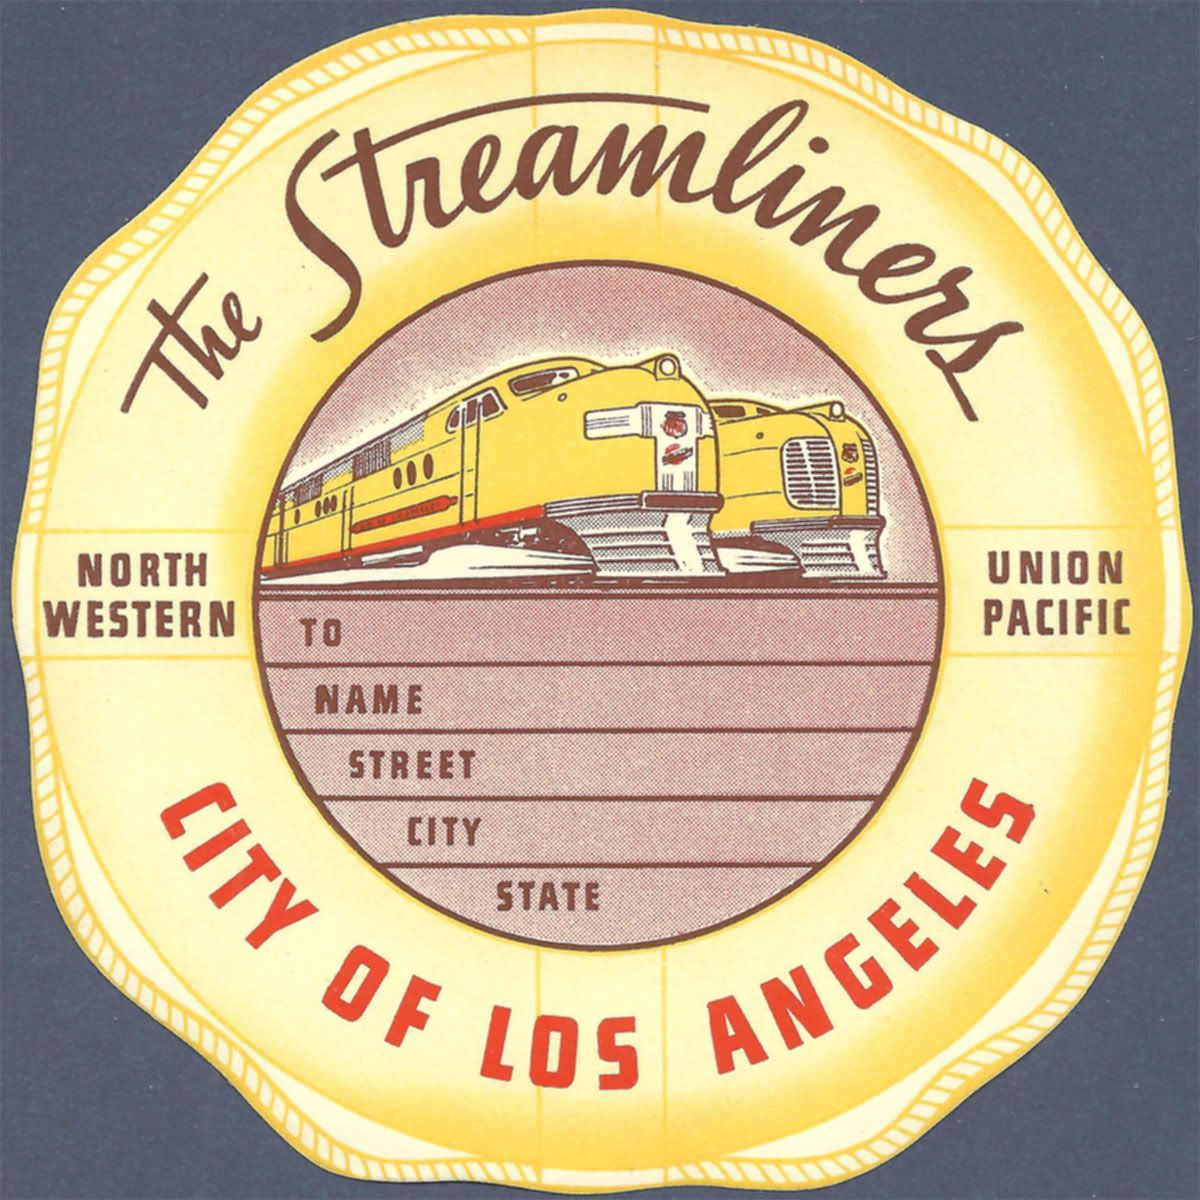 The Streamliner - CITY OF LOS ANGELES